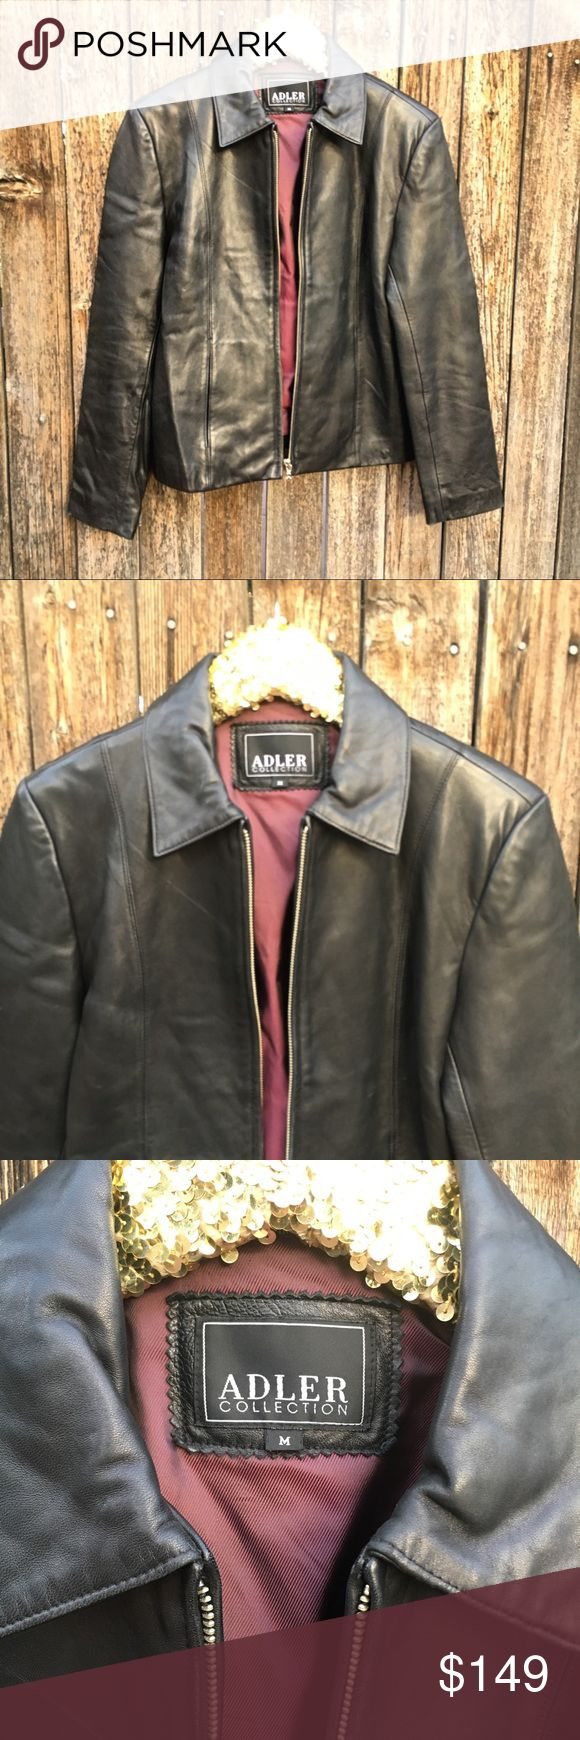 "Adler Black Lambskin Leather Jacket M EUC! Some minor scuffs and wear from minimal/normal use. Vintage 90s vibes with on trend with timeless appeal. Any occasion is a good occasion for genuine and authentic Lambskin Leather! Cool, classic and chic AF. 19"" pit to pit, 23"" shoulder to hem length, 23.5"" sleeves. Bundle and save. Offers warmly welcomed! Adler Jackets & Coats"